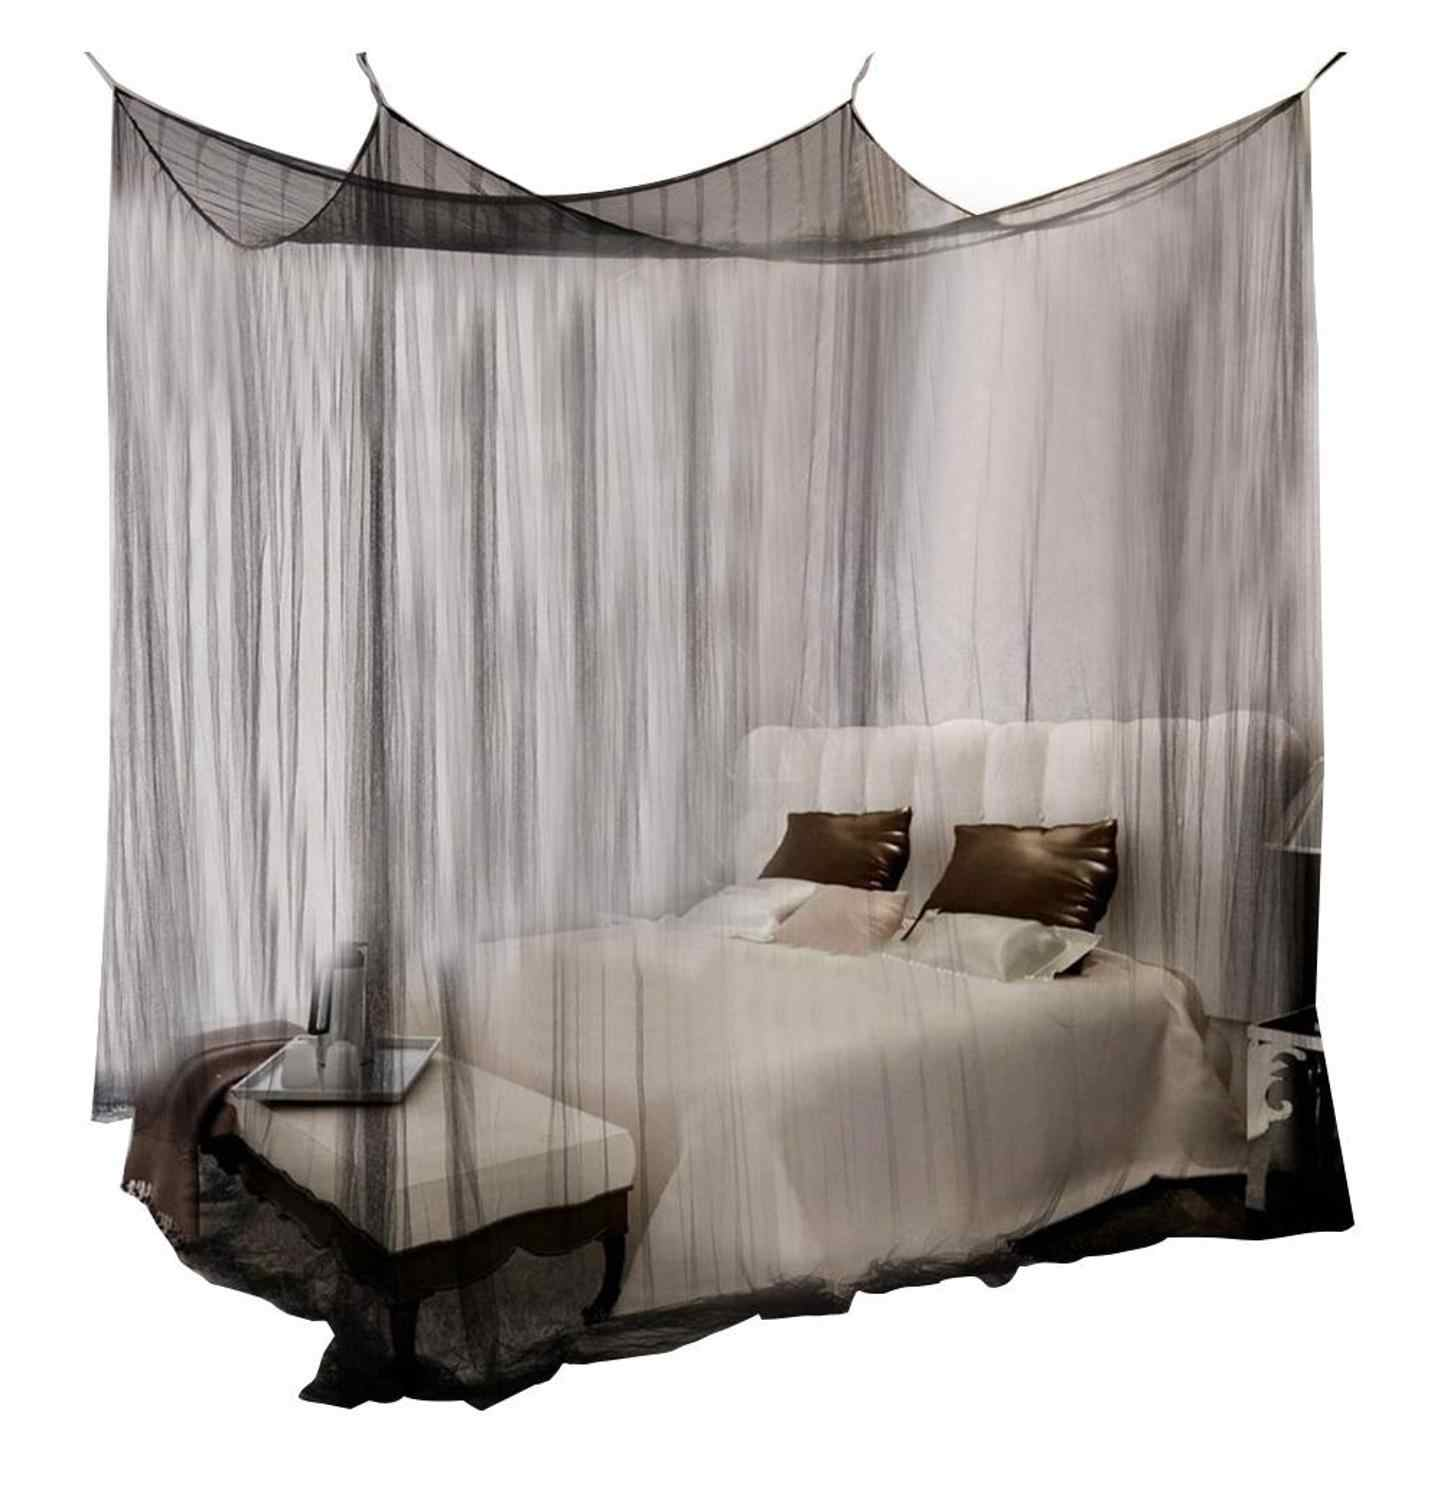 100 Cotton Mosquito Net Black White For Double Four Corner Bed Post Bed Canopy Mosquito Net Full Queen King Size Bedding Net Mosquito Net Aliexpress